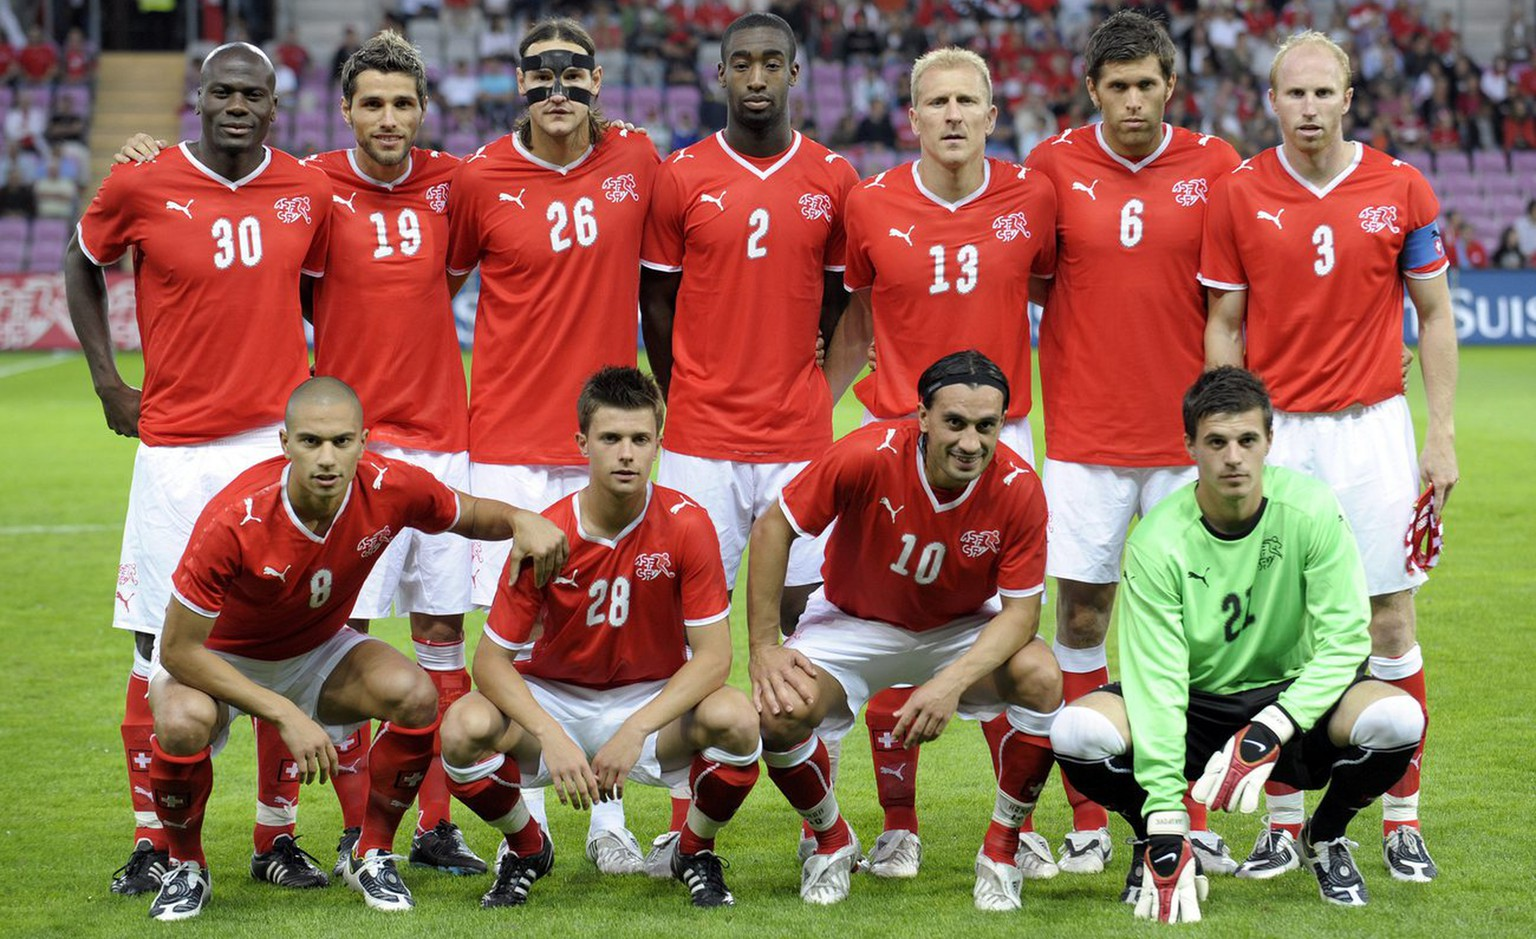 Swiss soccer players from left behind, Blaise Nkufo, Valon Behrami, Alain Nef, Johan Djourou, Stephane Grichting, Benjamin Huggel and Ludovic Magnin, in front from left, Goekhan Inler, Valentin Stocker, Hakan Yakin and Swiss goalkeeper Eldin Jakupovic pose for a team picture before an international friendly test game between Switzerland and Cyprus at the Stade de Geneve stadium in Geneva, Switzerland, Wednesday, August 20, 2008. (KEYSTONE/Laurent Gillieron)